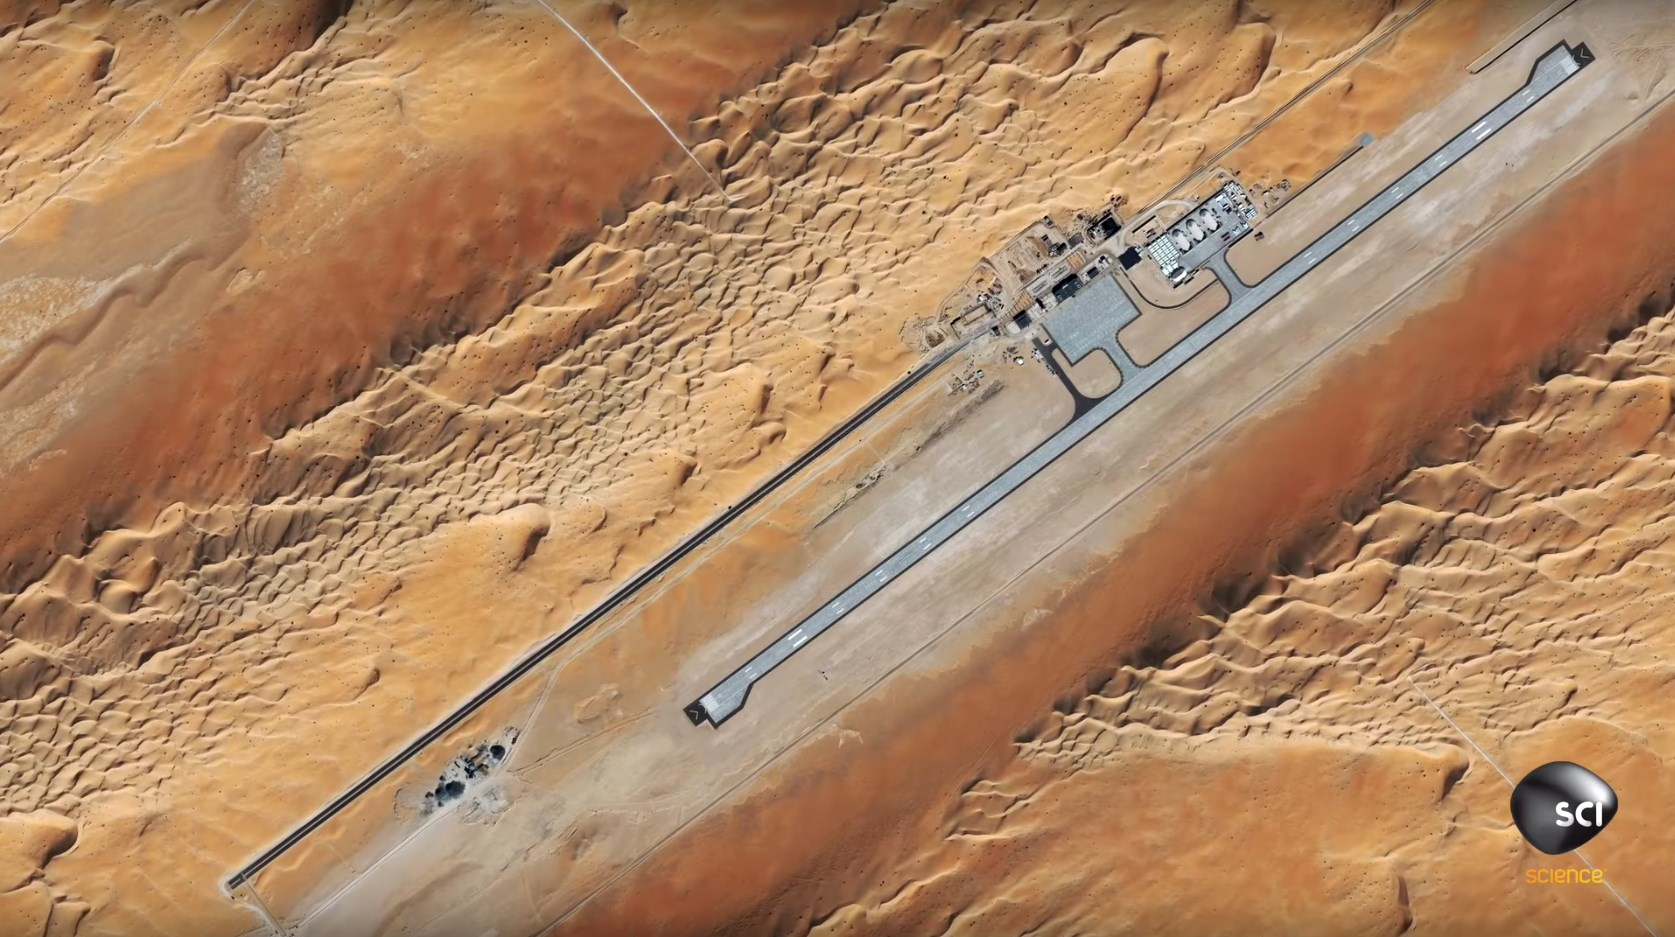 Satellite imagery capture apparent US assassination drone base or CIA black torture site in Saudi Desert